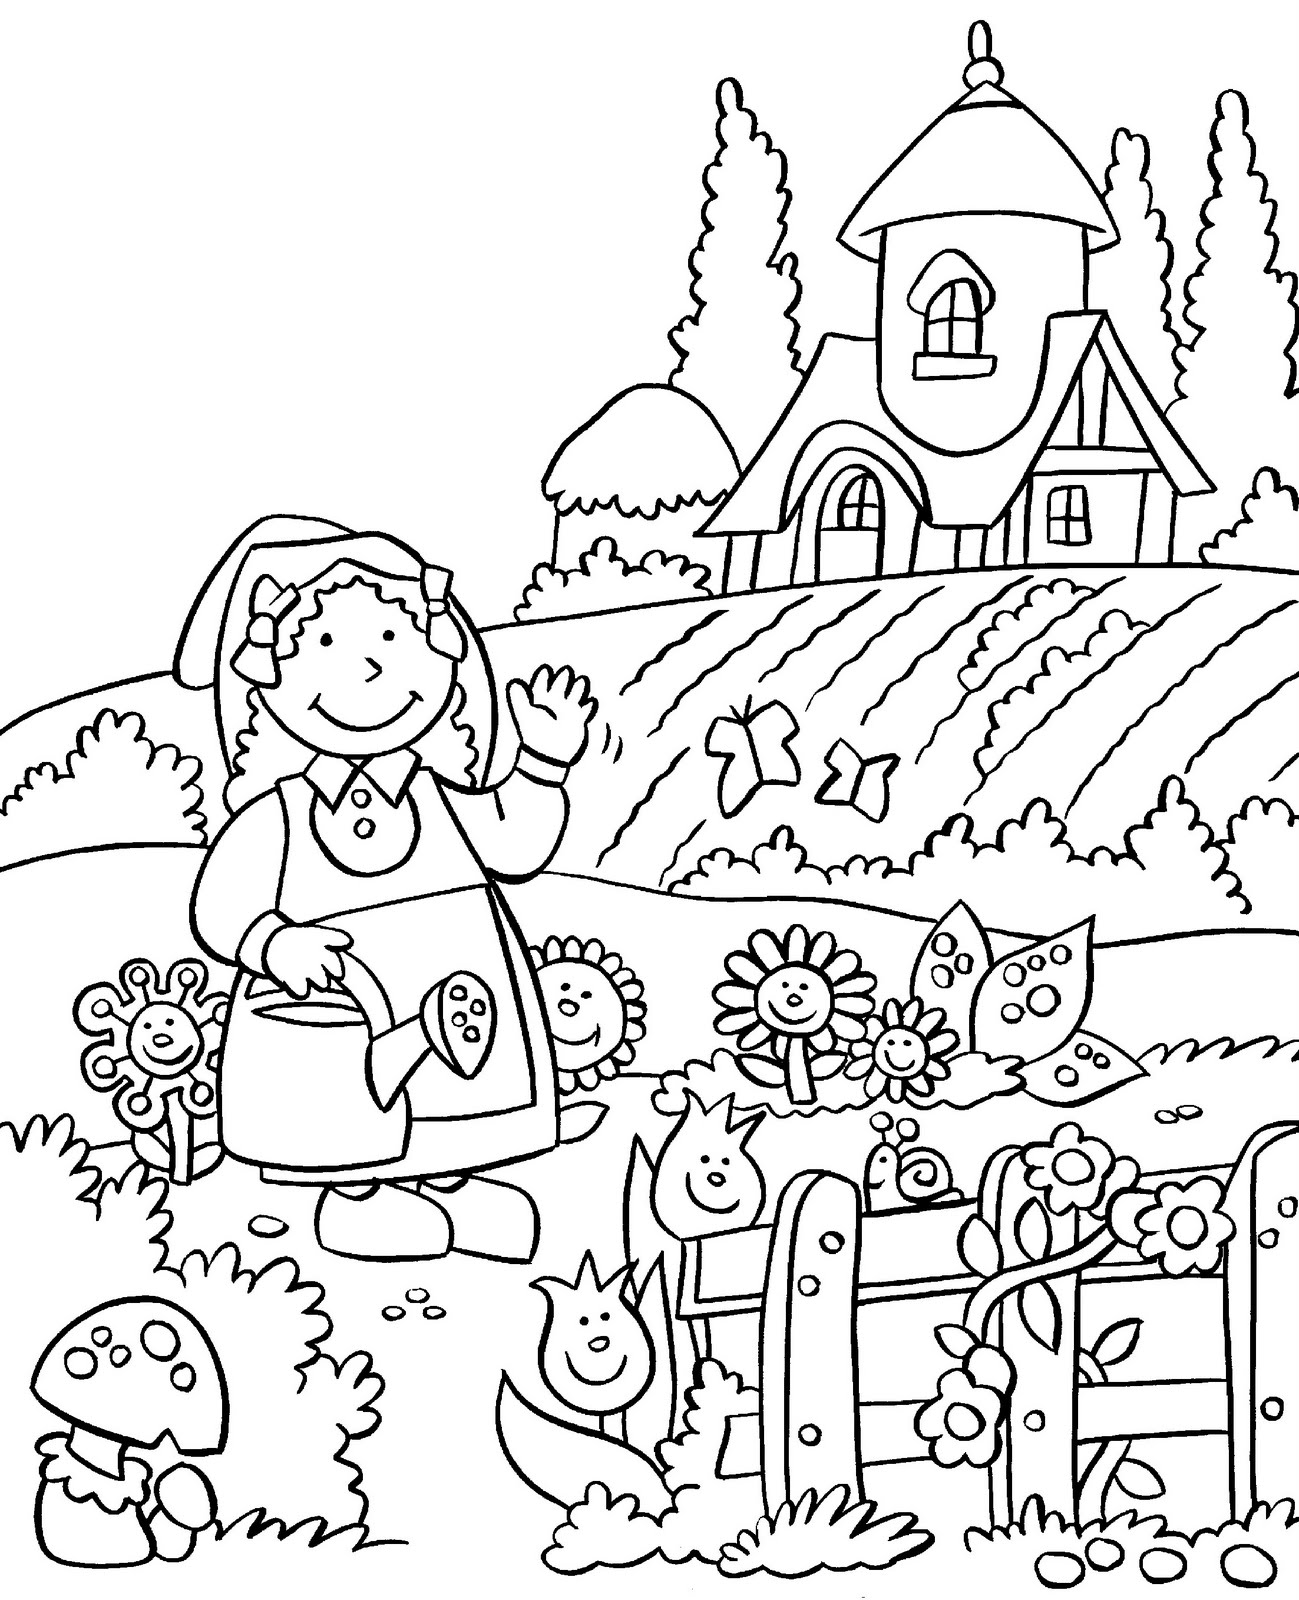 gardening pictures to colour gardening coloring pages to download and print for free pictures colour gardening to